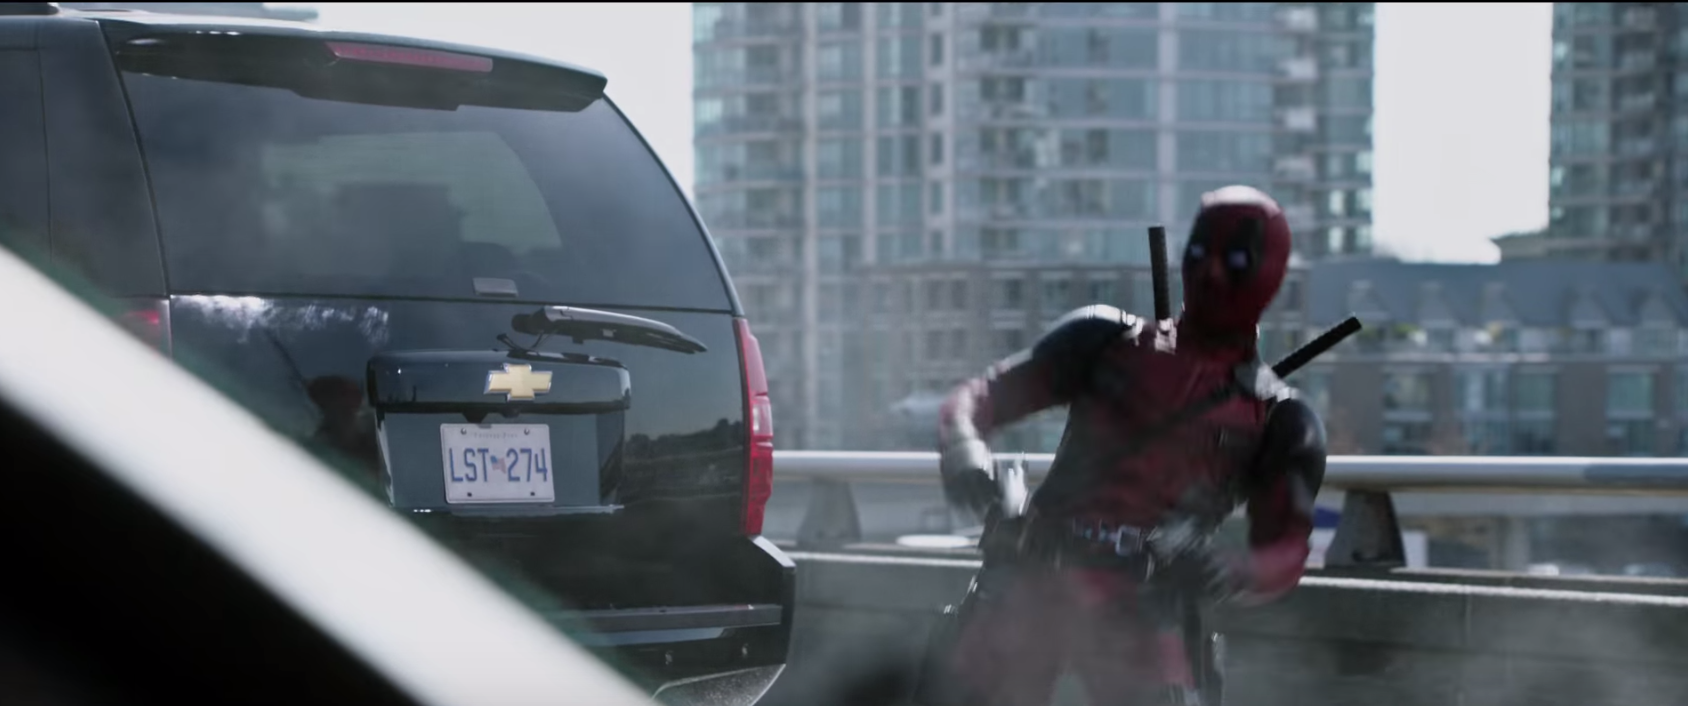 deadpool placement produit chevrolet